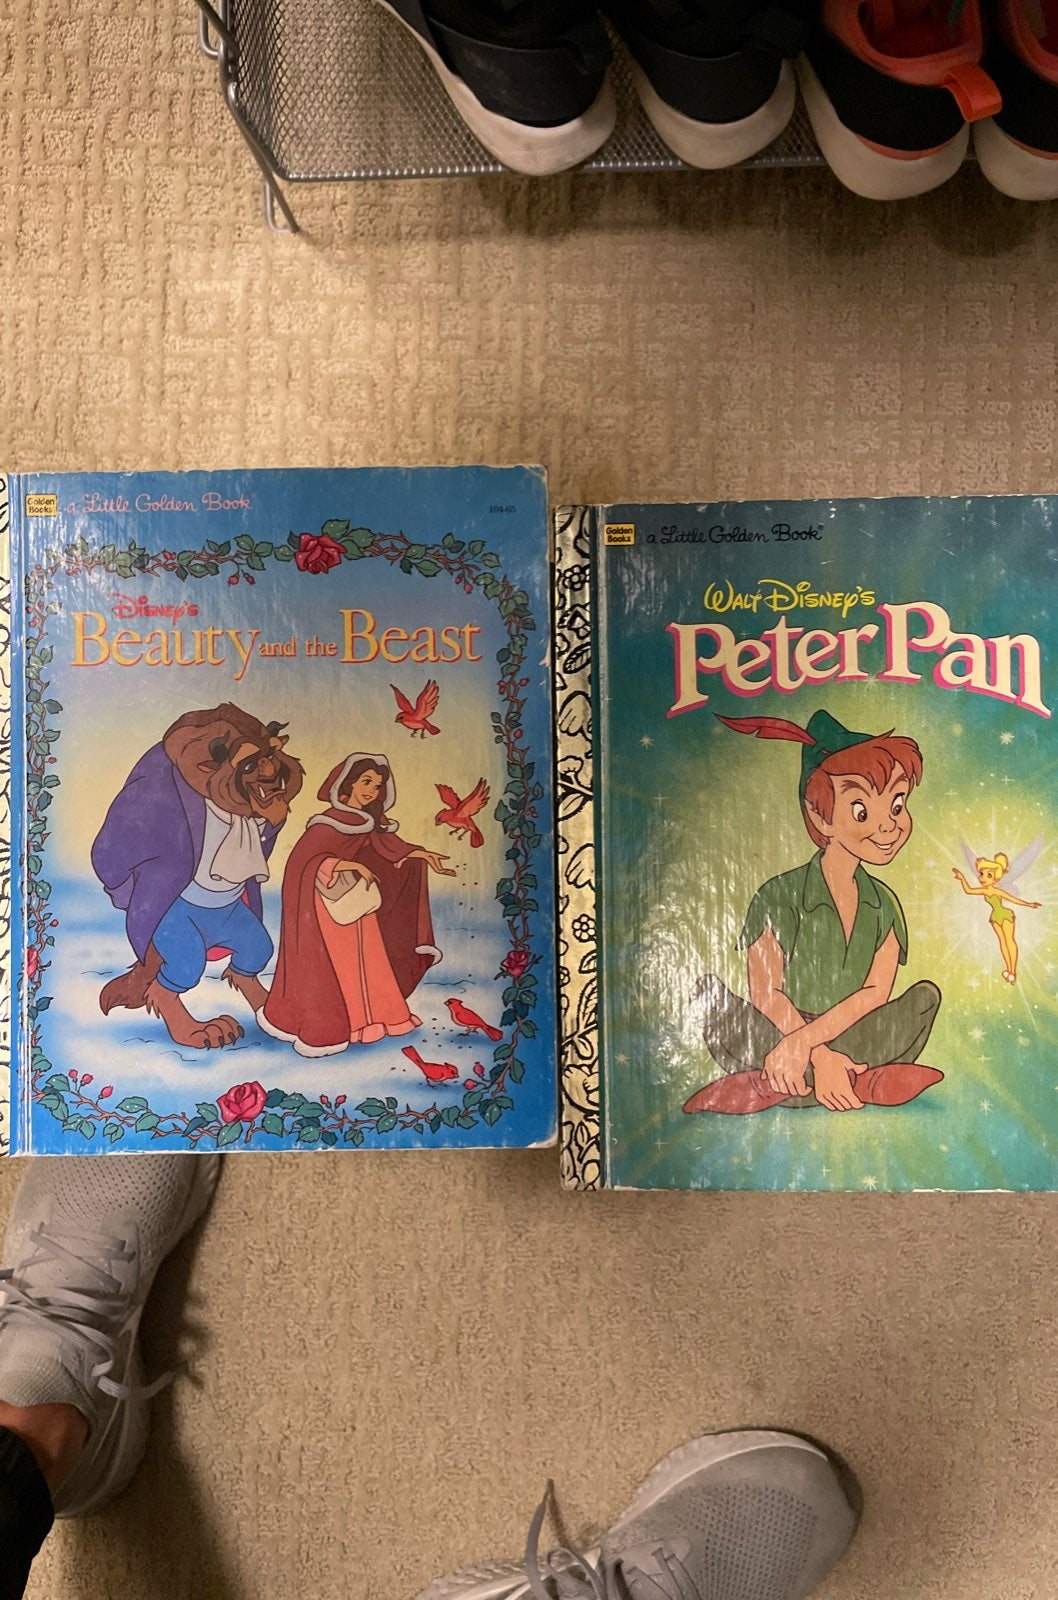 Golden Books Peten Pan and Beuty & The B